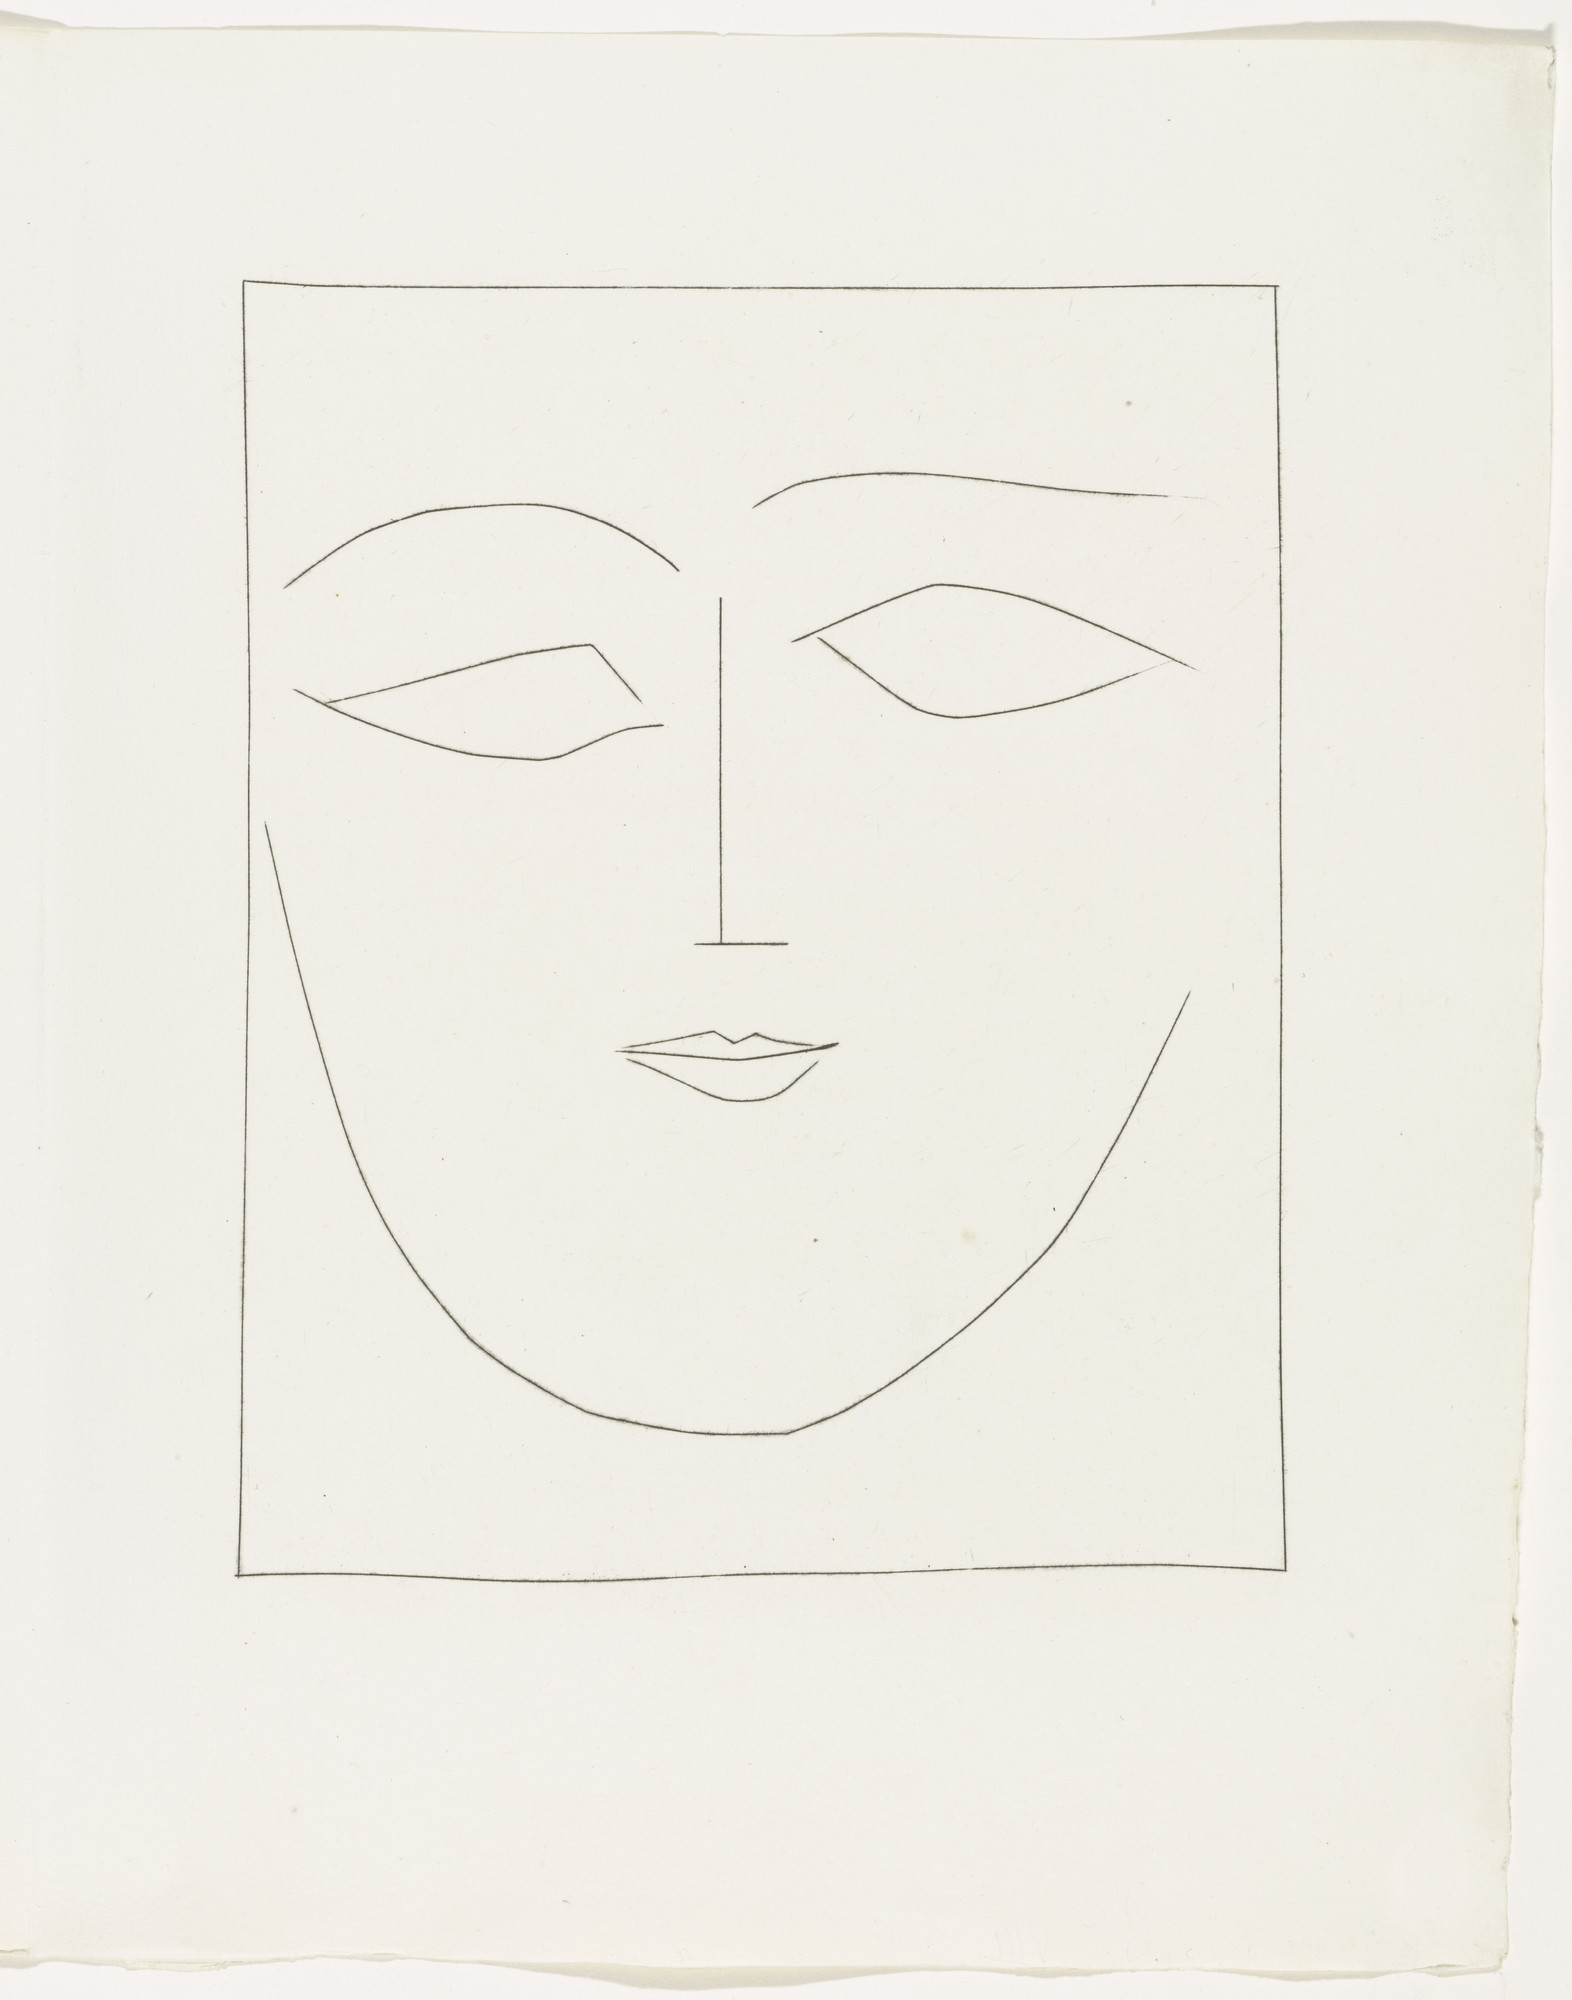 Pablo Picasso. Plate (page 71) from the illustrated book Carmen. 1948-1949 | MoMA